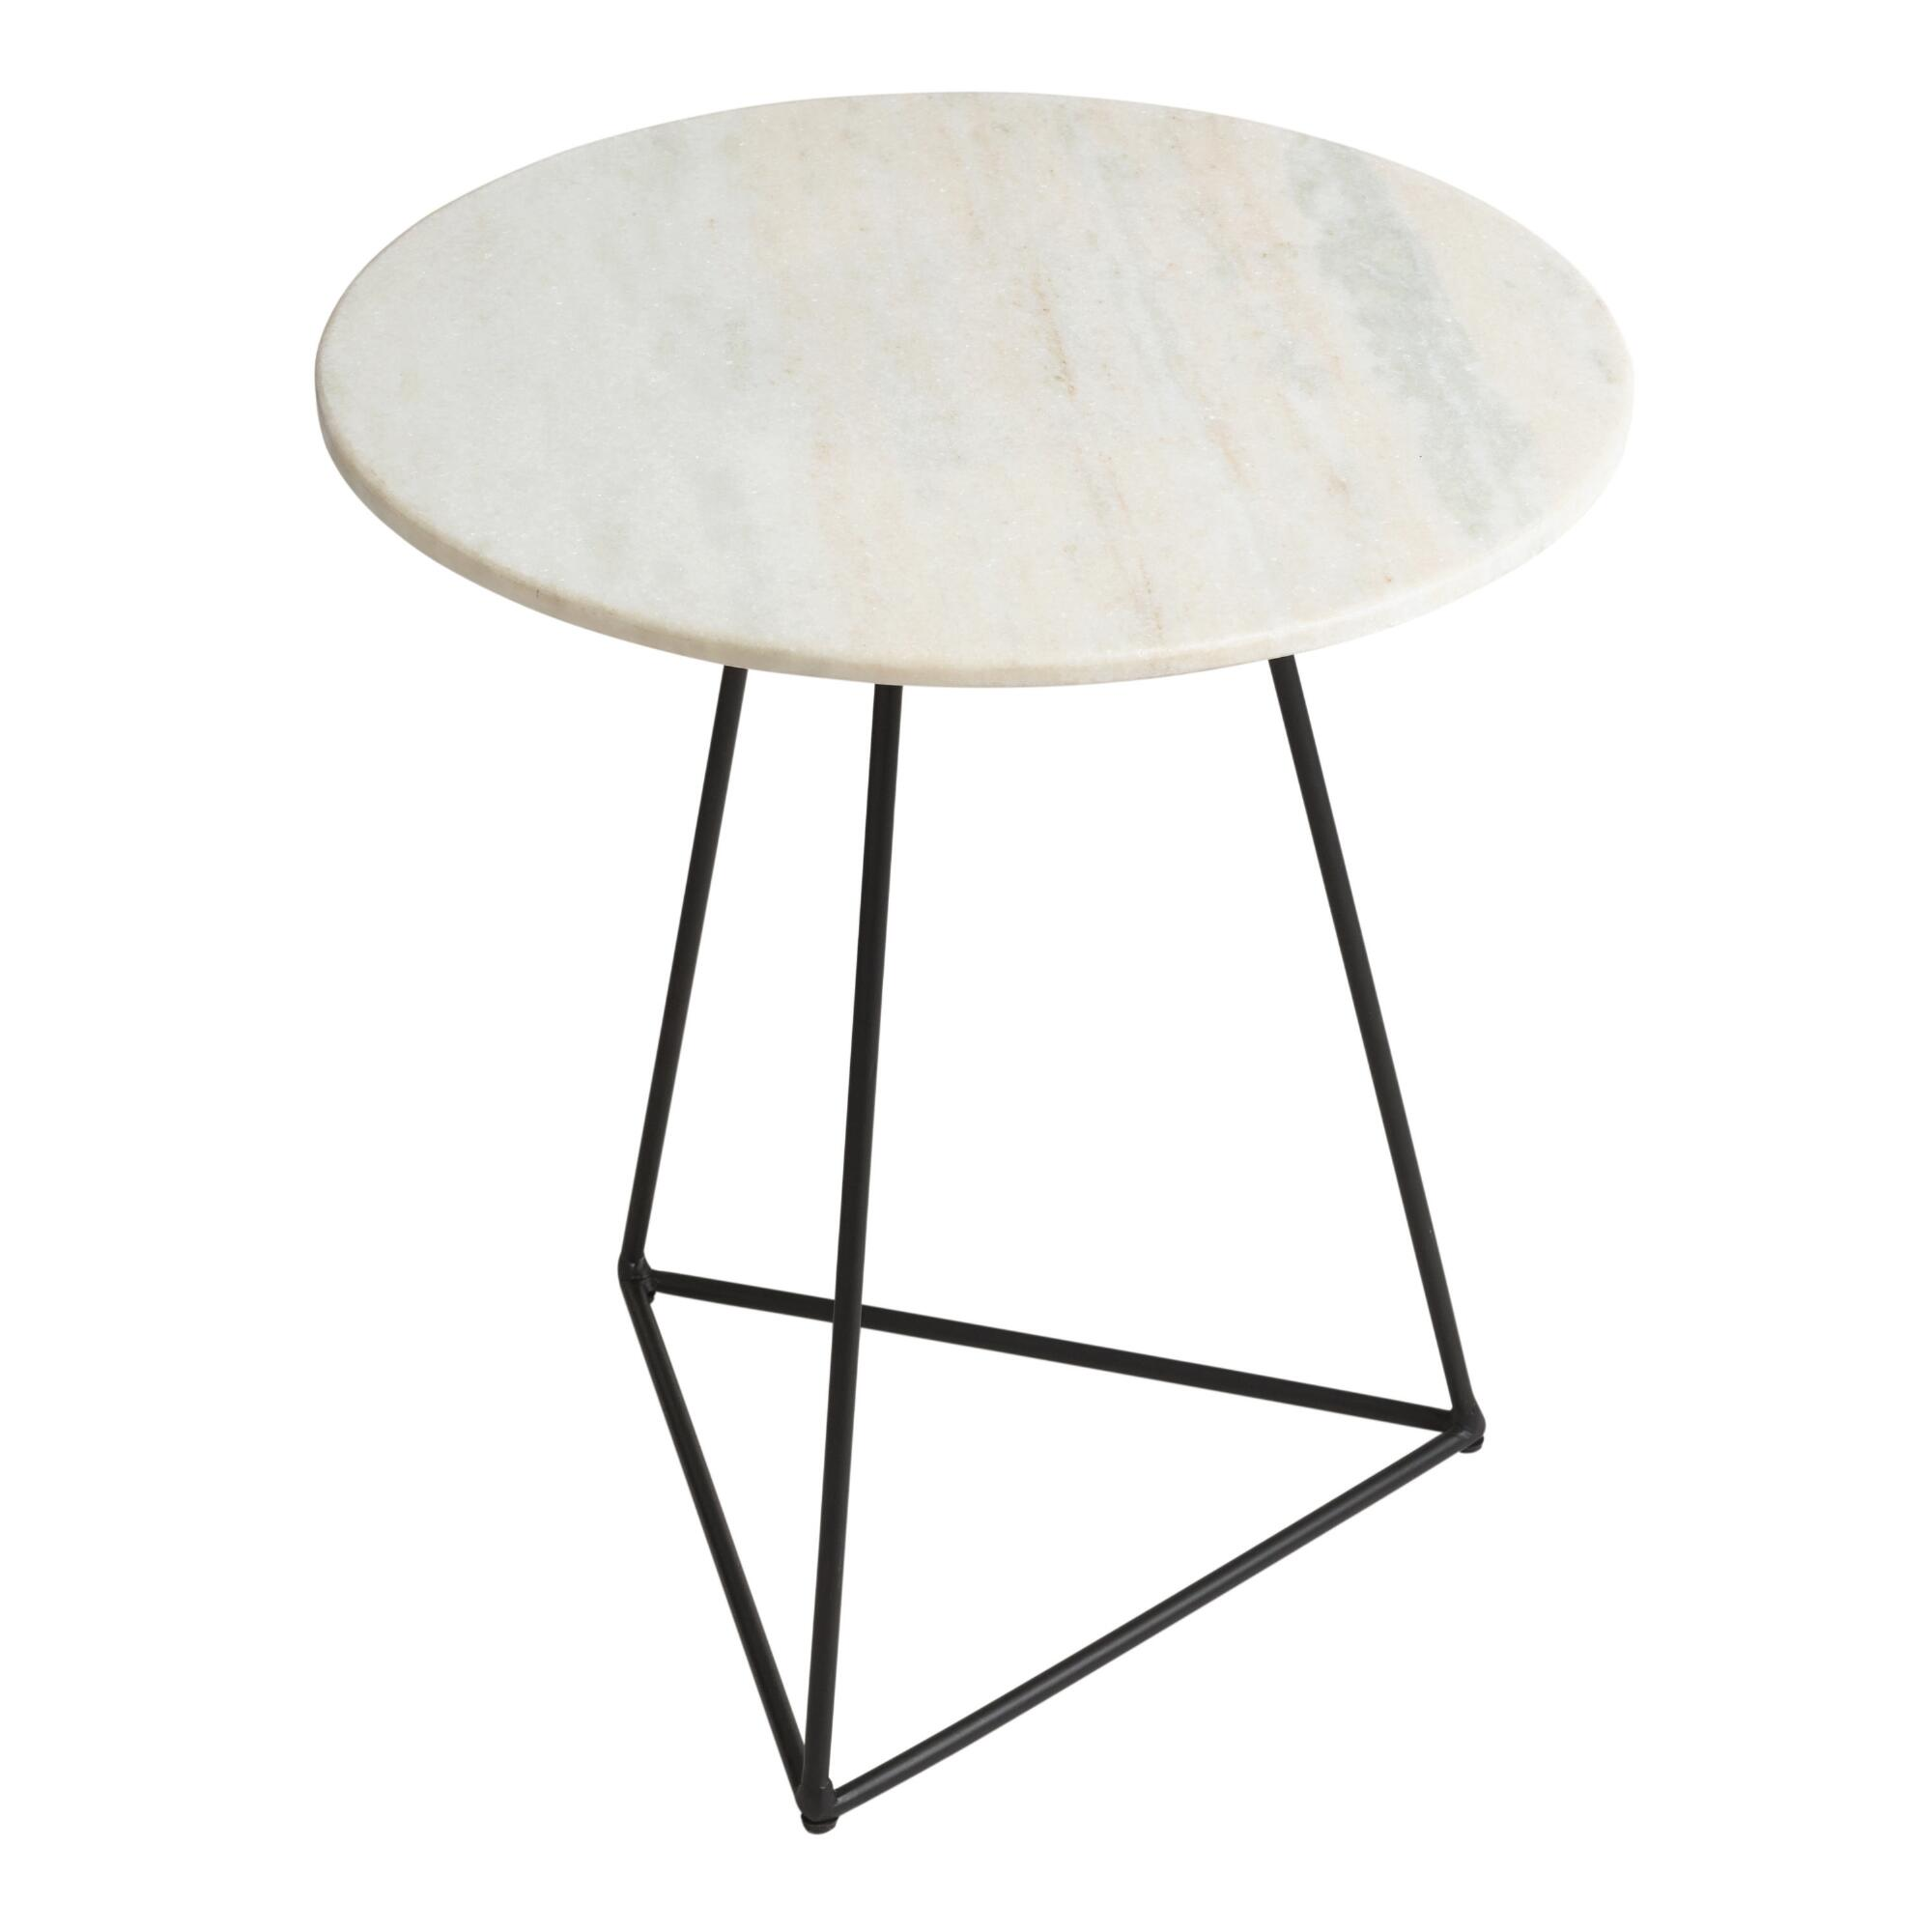 White Marble Table : White marble and metal round accent table world market